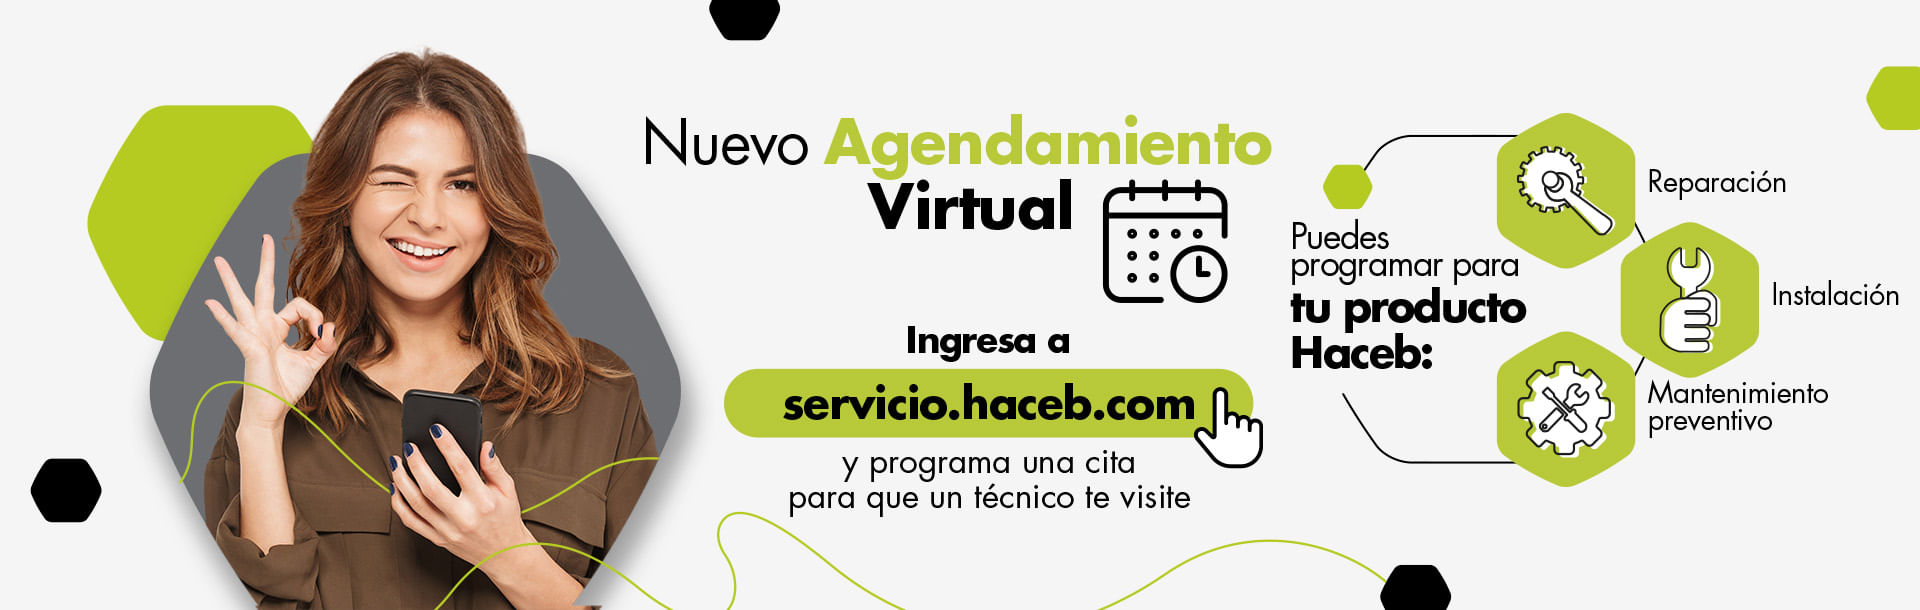 agendamiento virtual